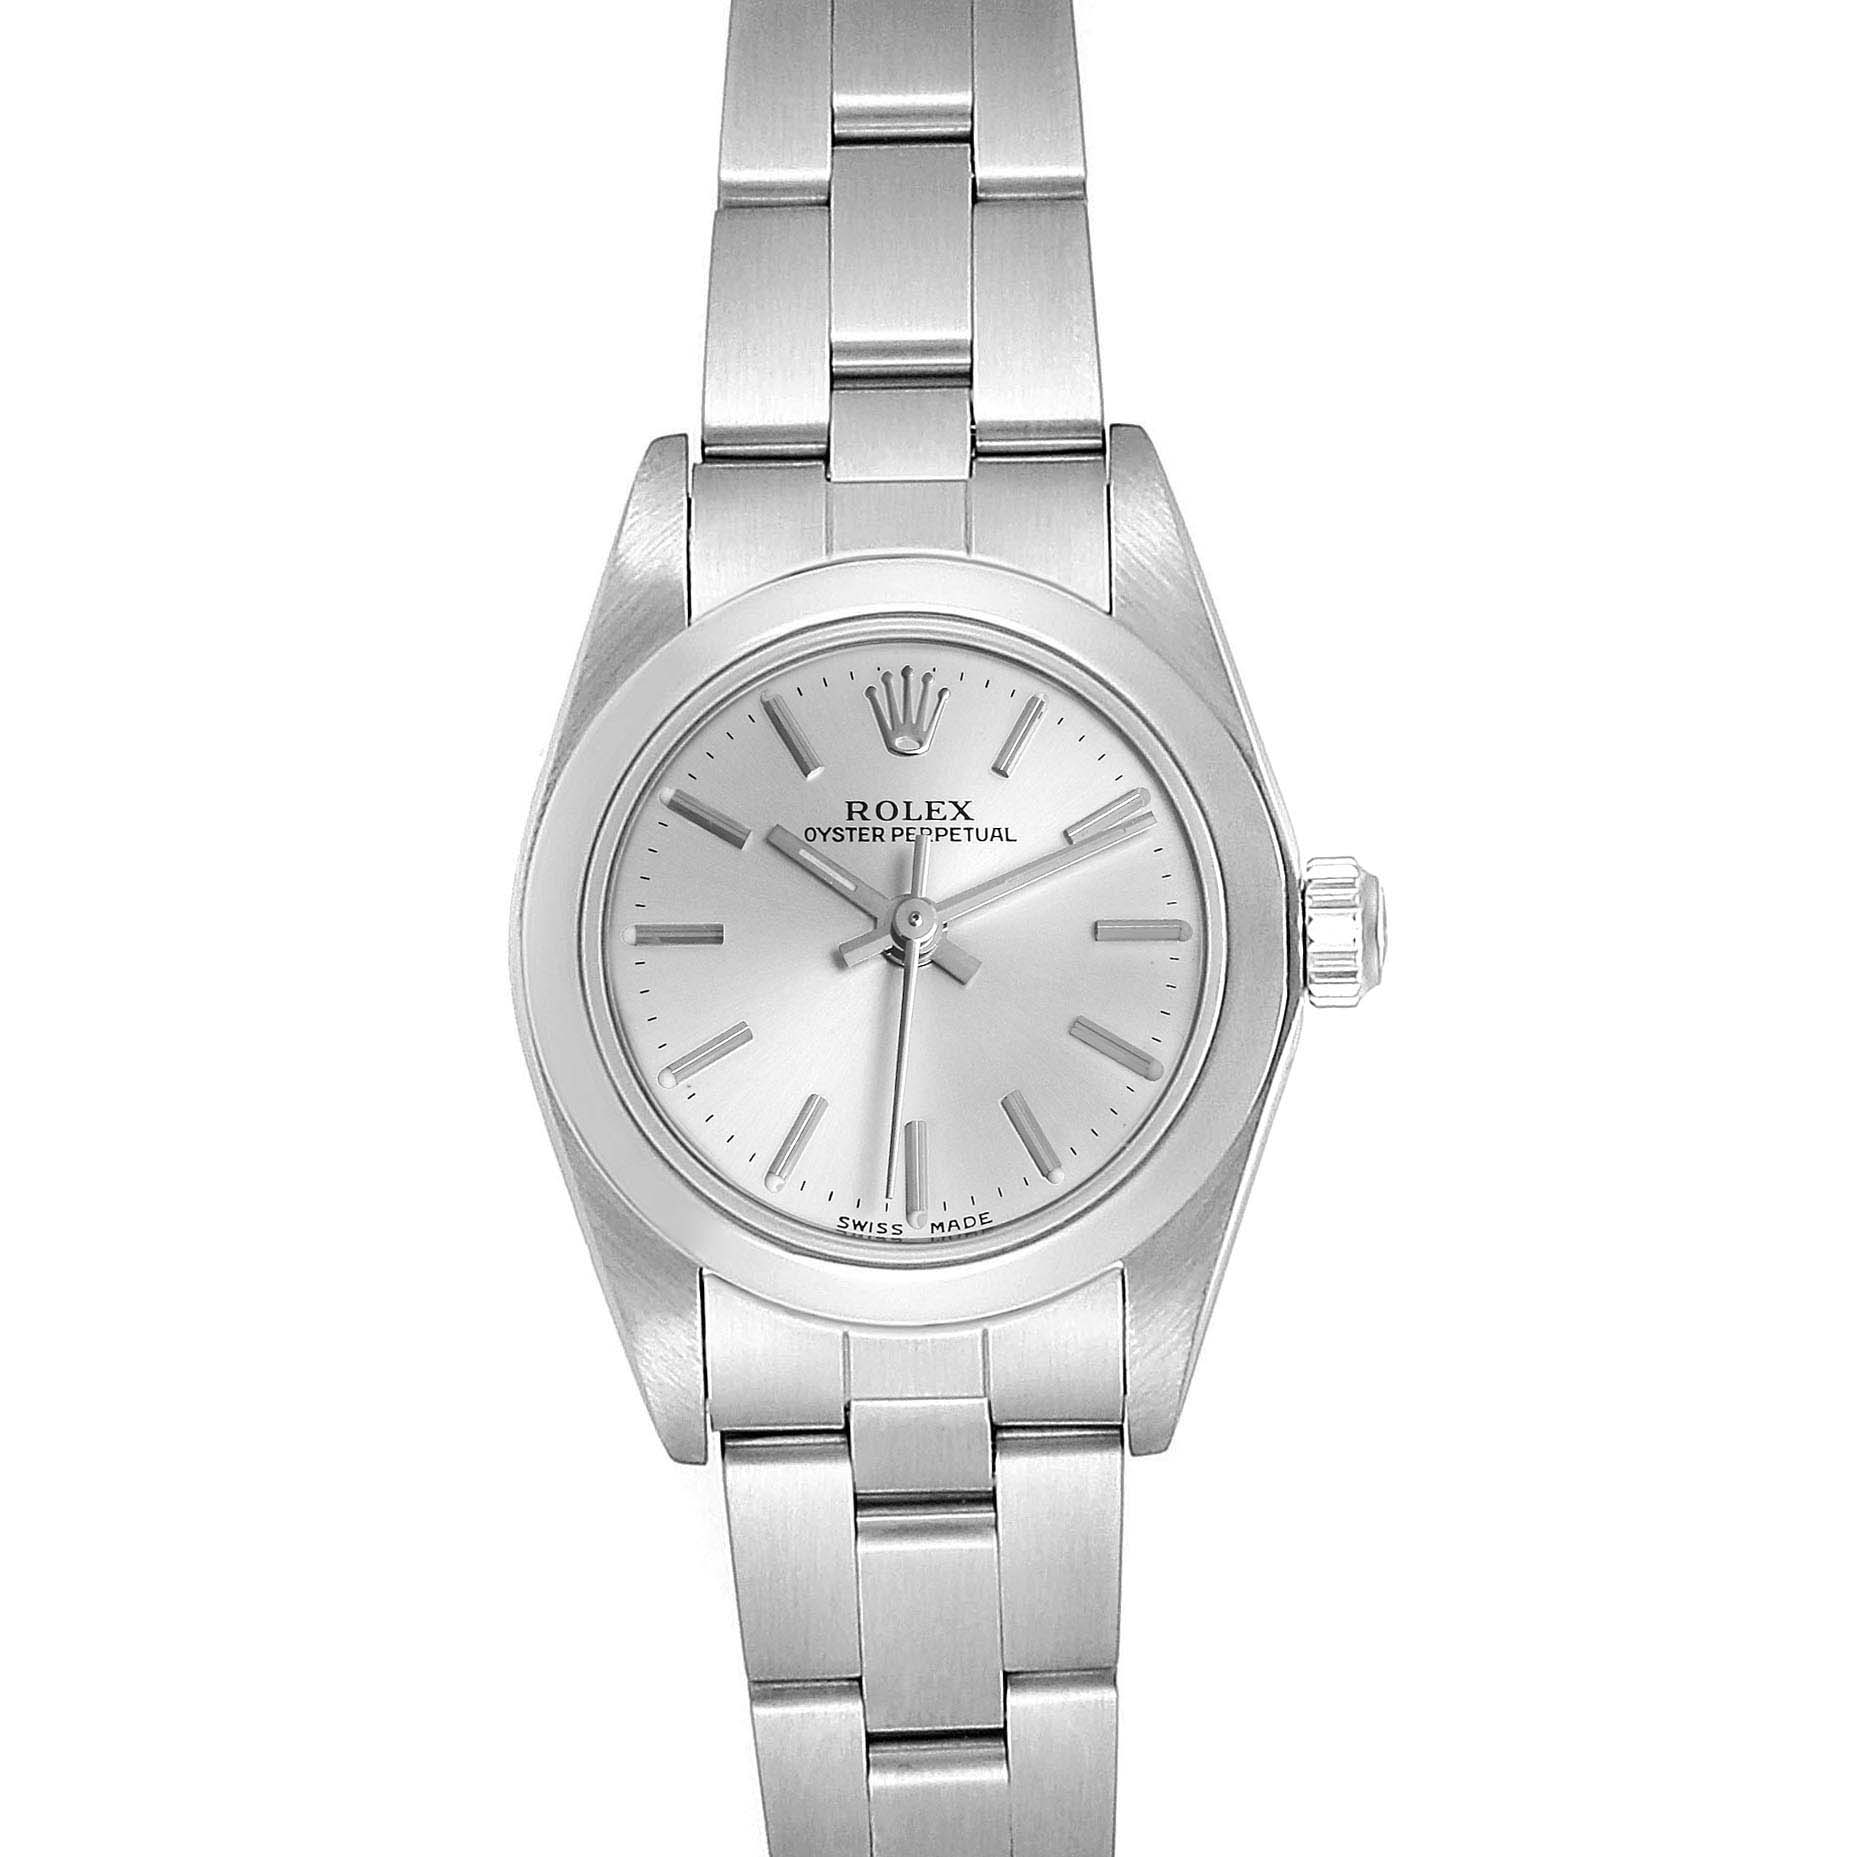 Rolex Oyster Perpetual Nondate Silver Dial Ladies Watch 76080 Box Papers